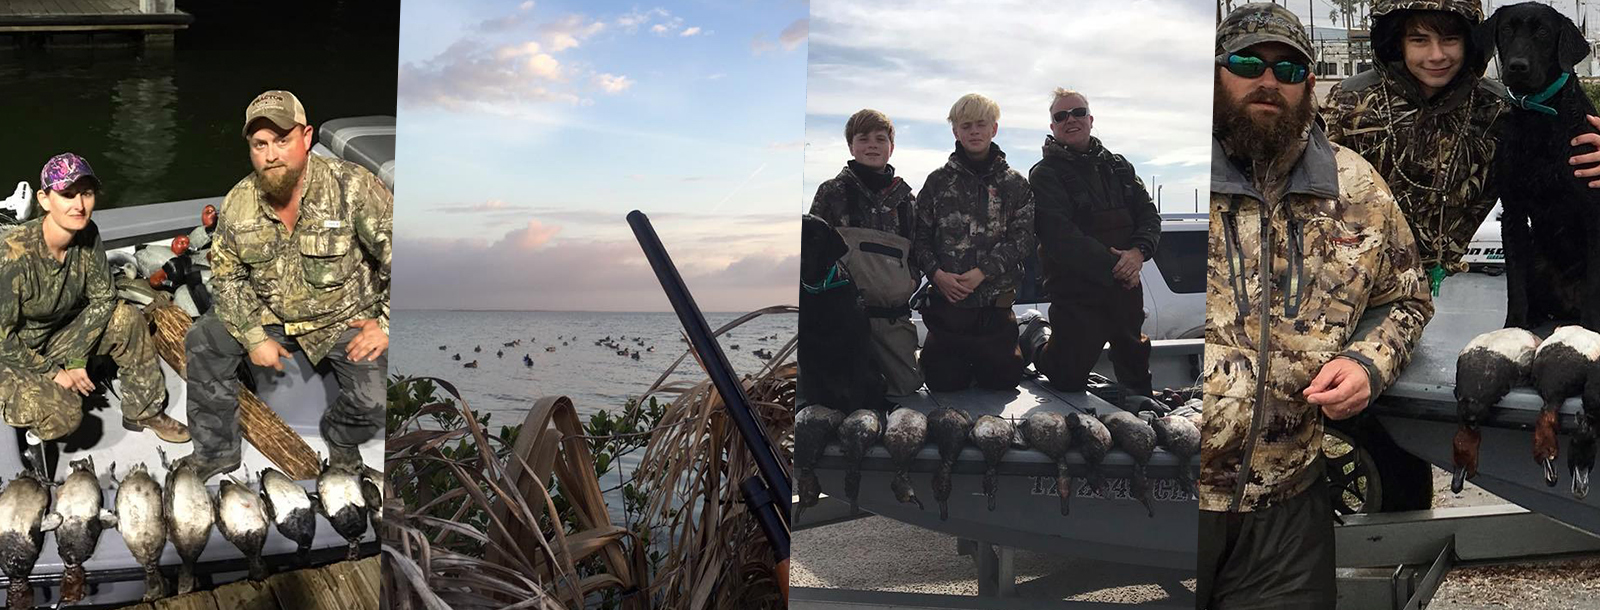 Texas Wild Duck Hunting Fully Guided Hunting Trips